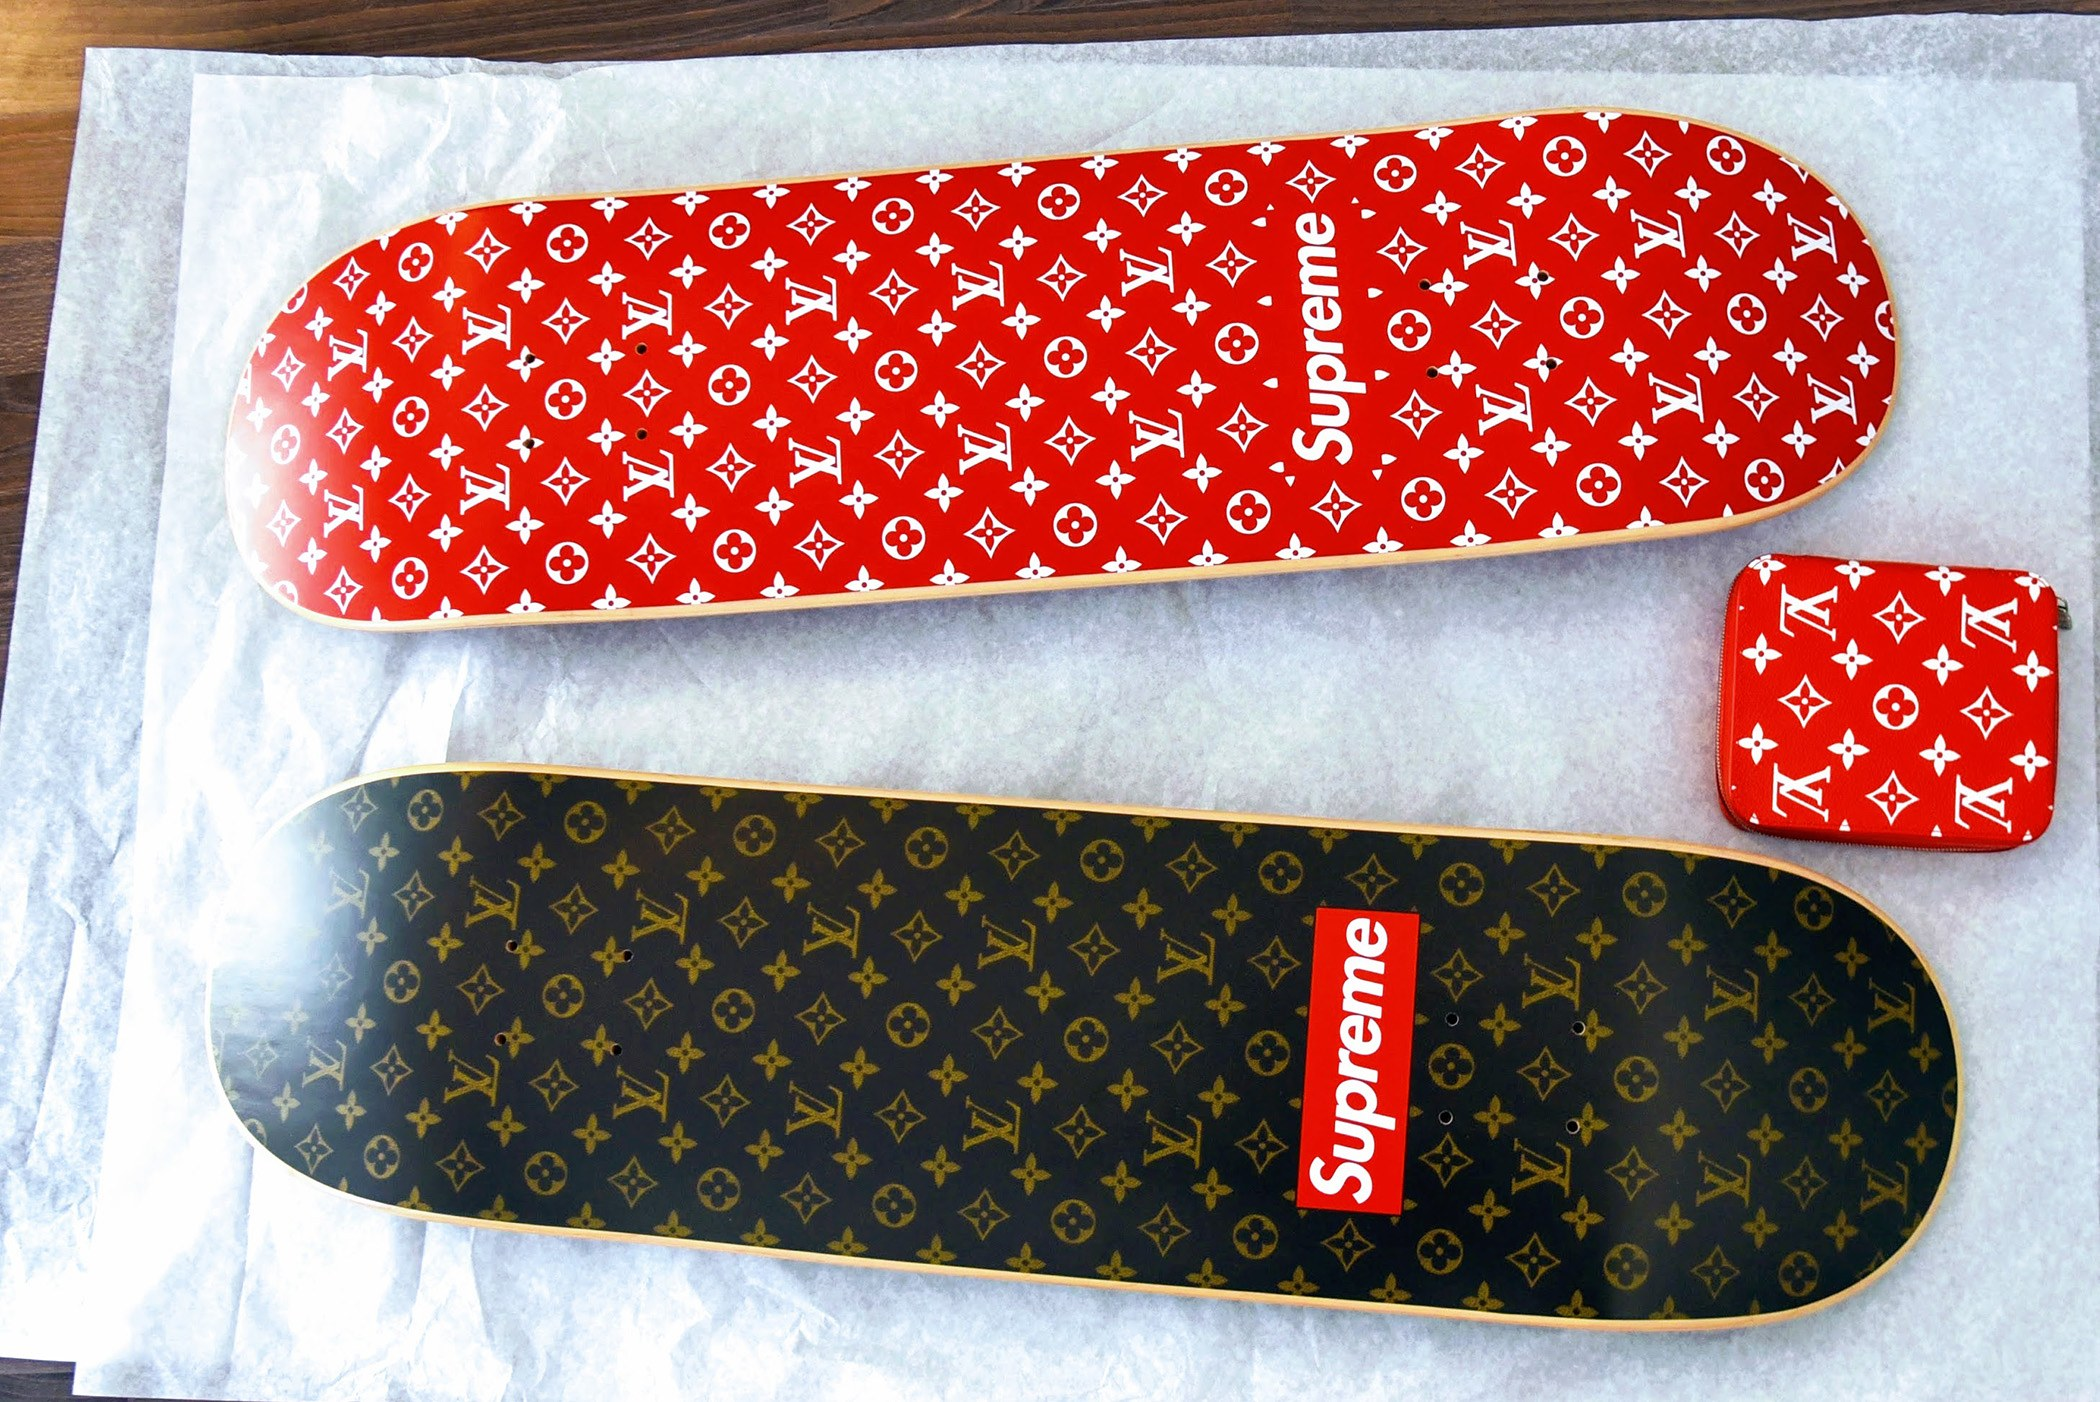 Louis Vuitton x Supreme collaboration  an enduring success or misread  experiment  – The Connector eb51bab233